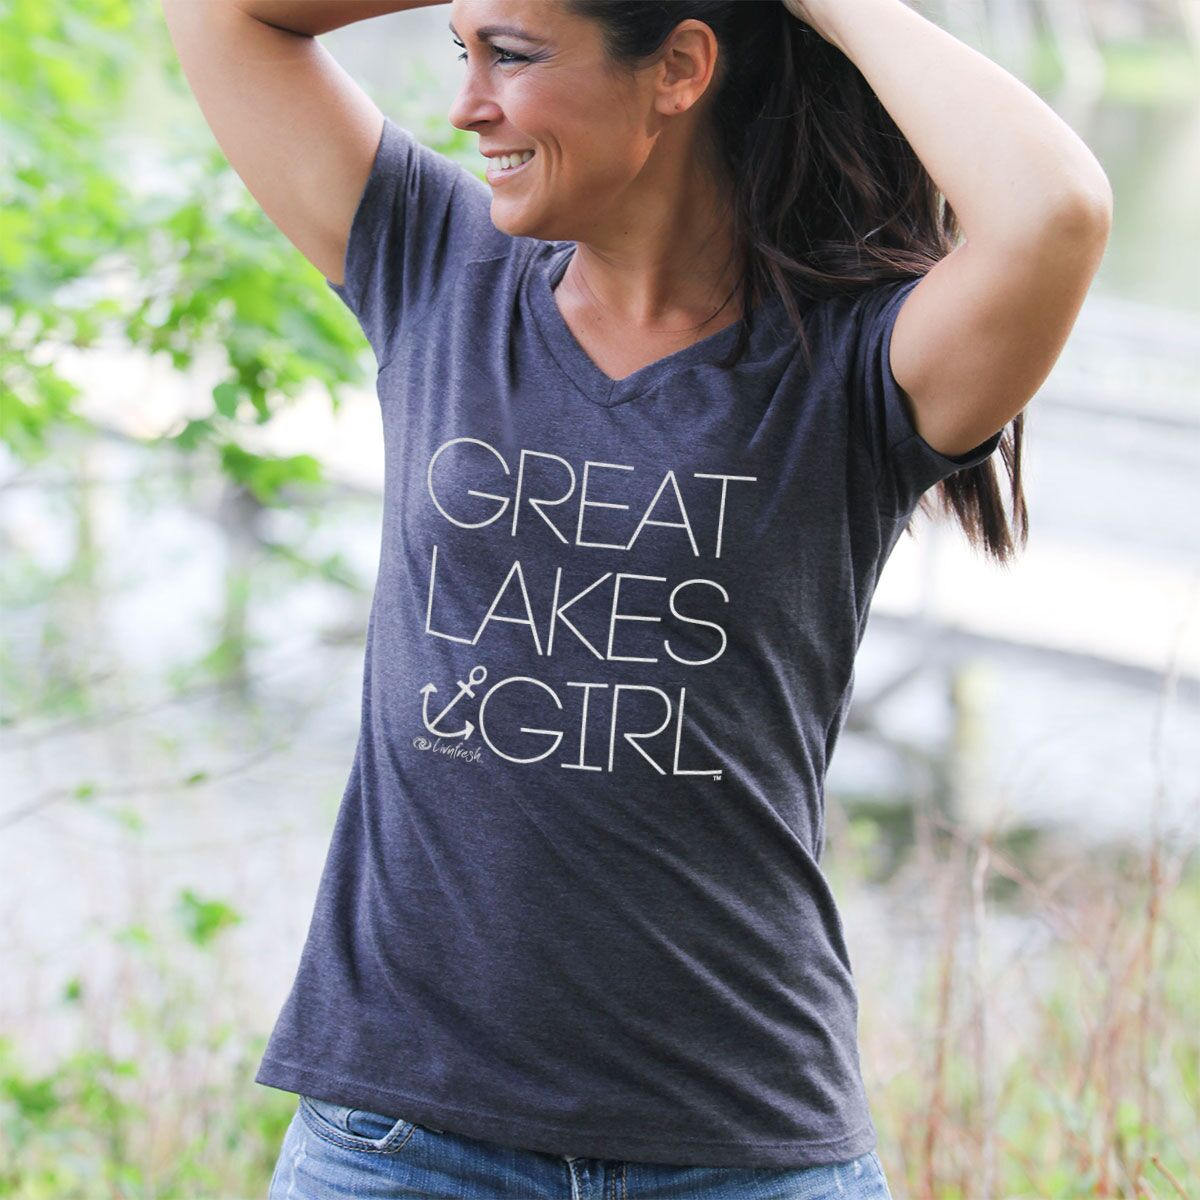 Great Lakes Girl Women's V-Neck